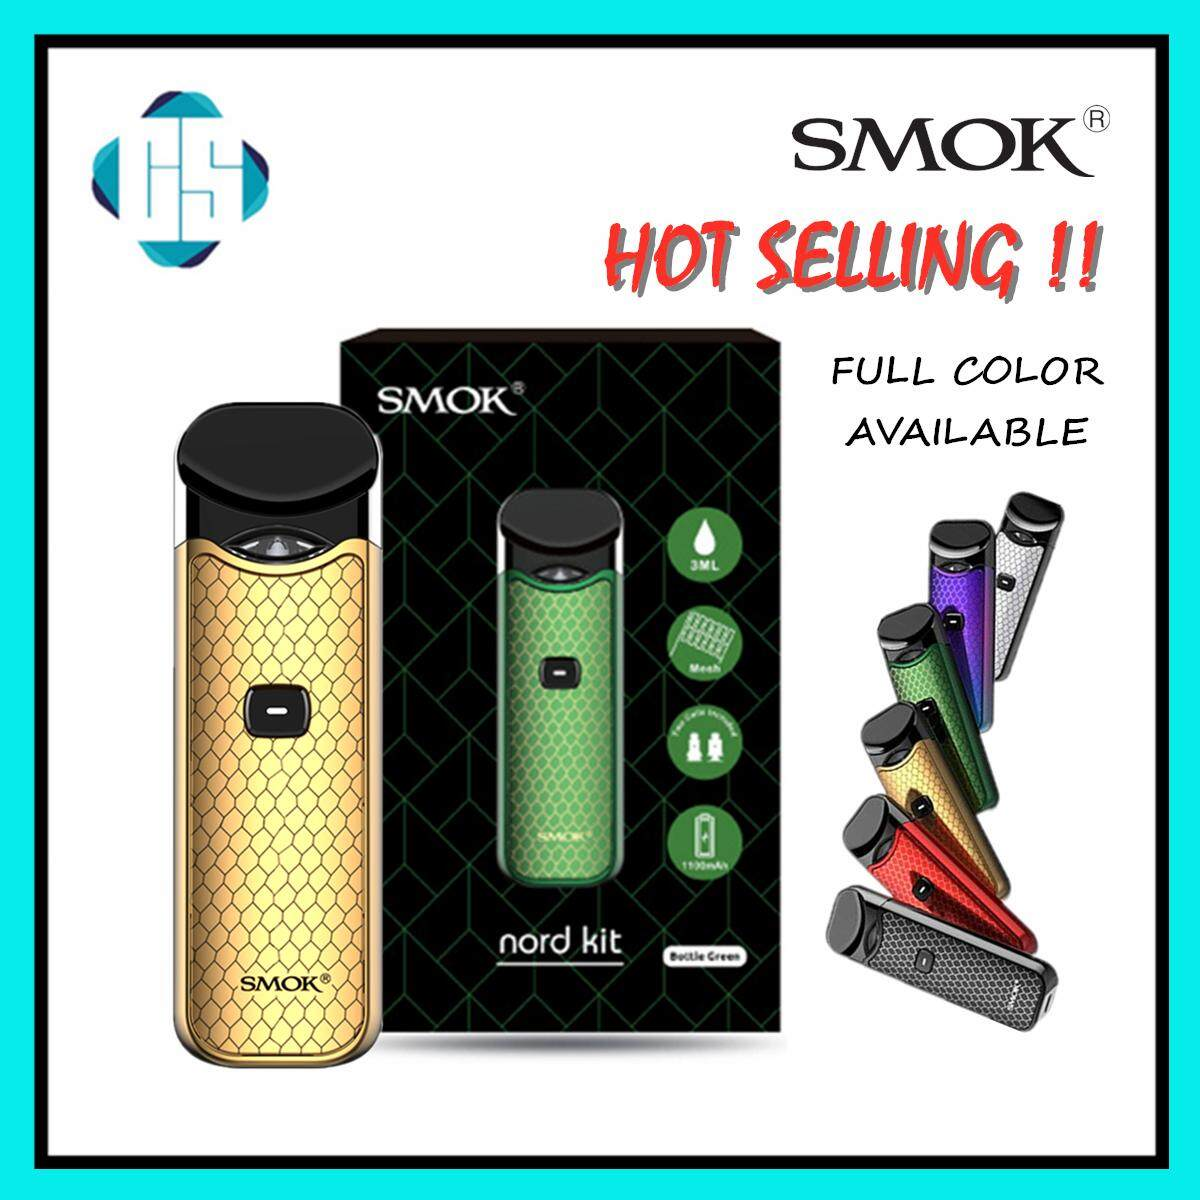 Amazing Gadgets for the Best Price in Malaysia